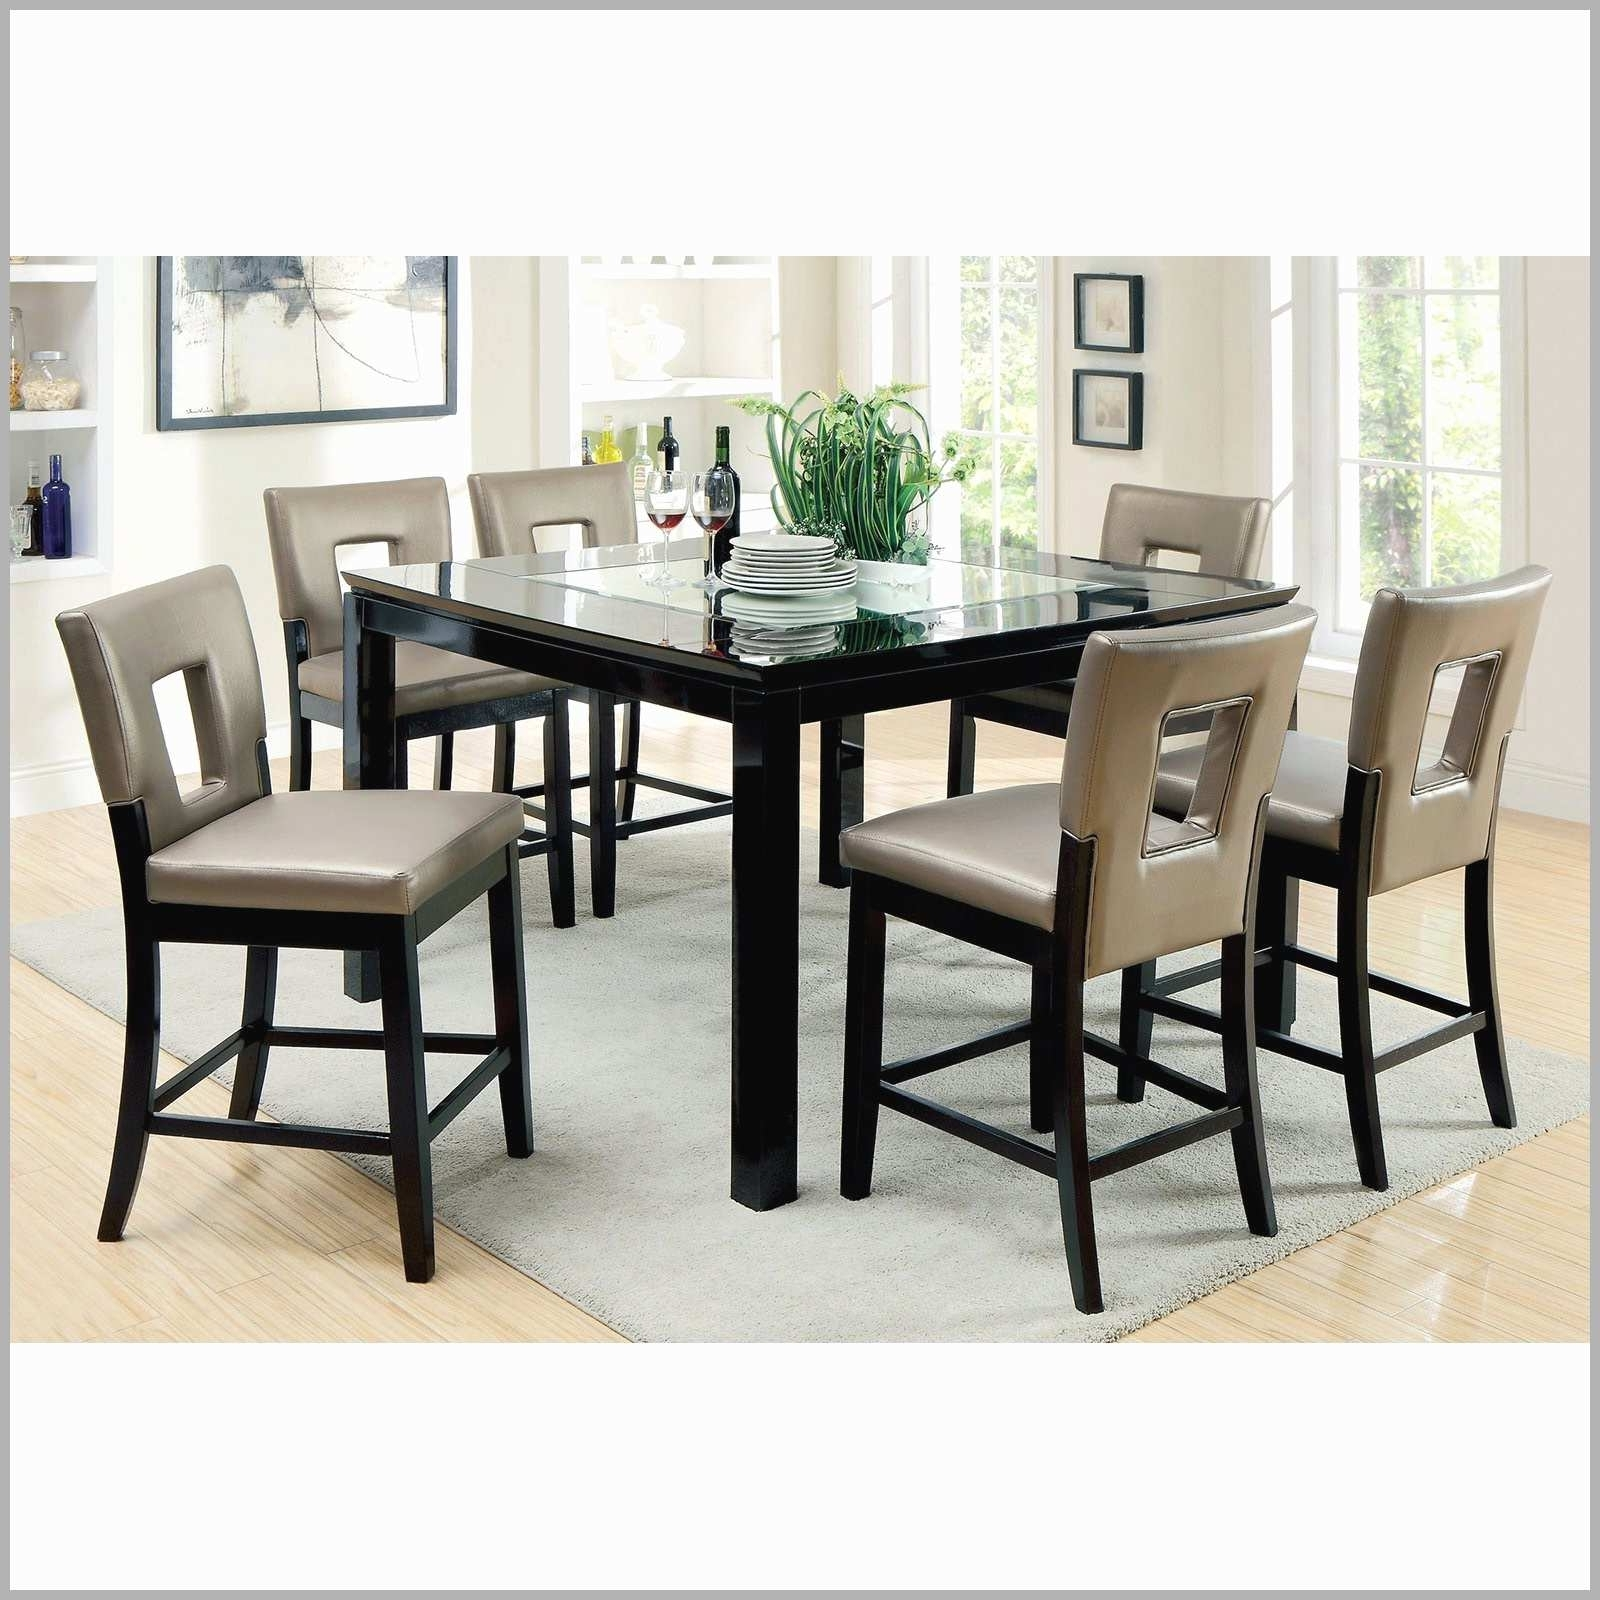 Dining Tables Seats 8 Inside Latest Round Dining Room Table Seats 8 Fresh 8 Person Square Dining Table (Gallery 25 of 25)